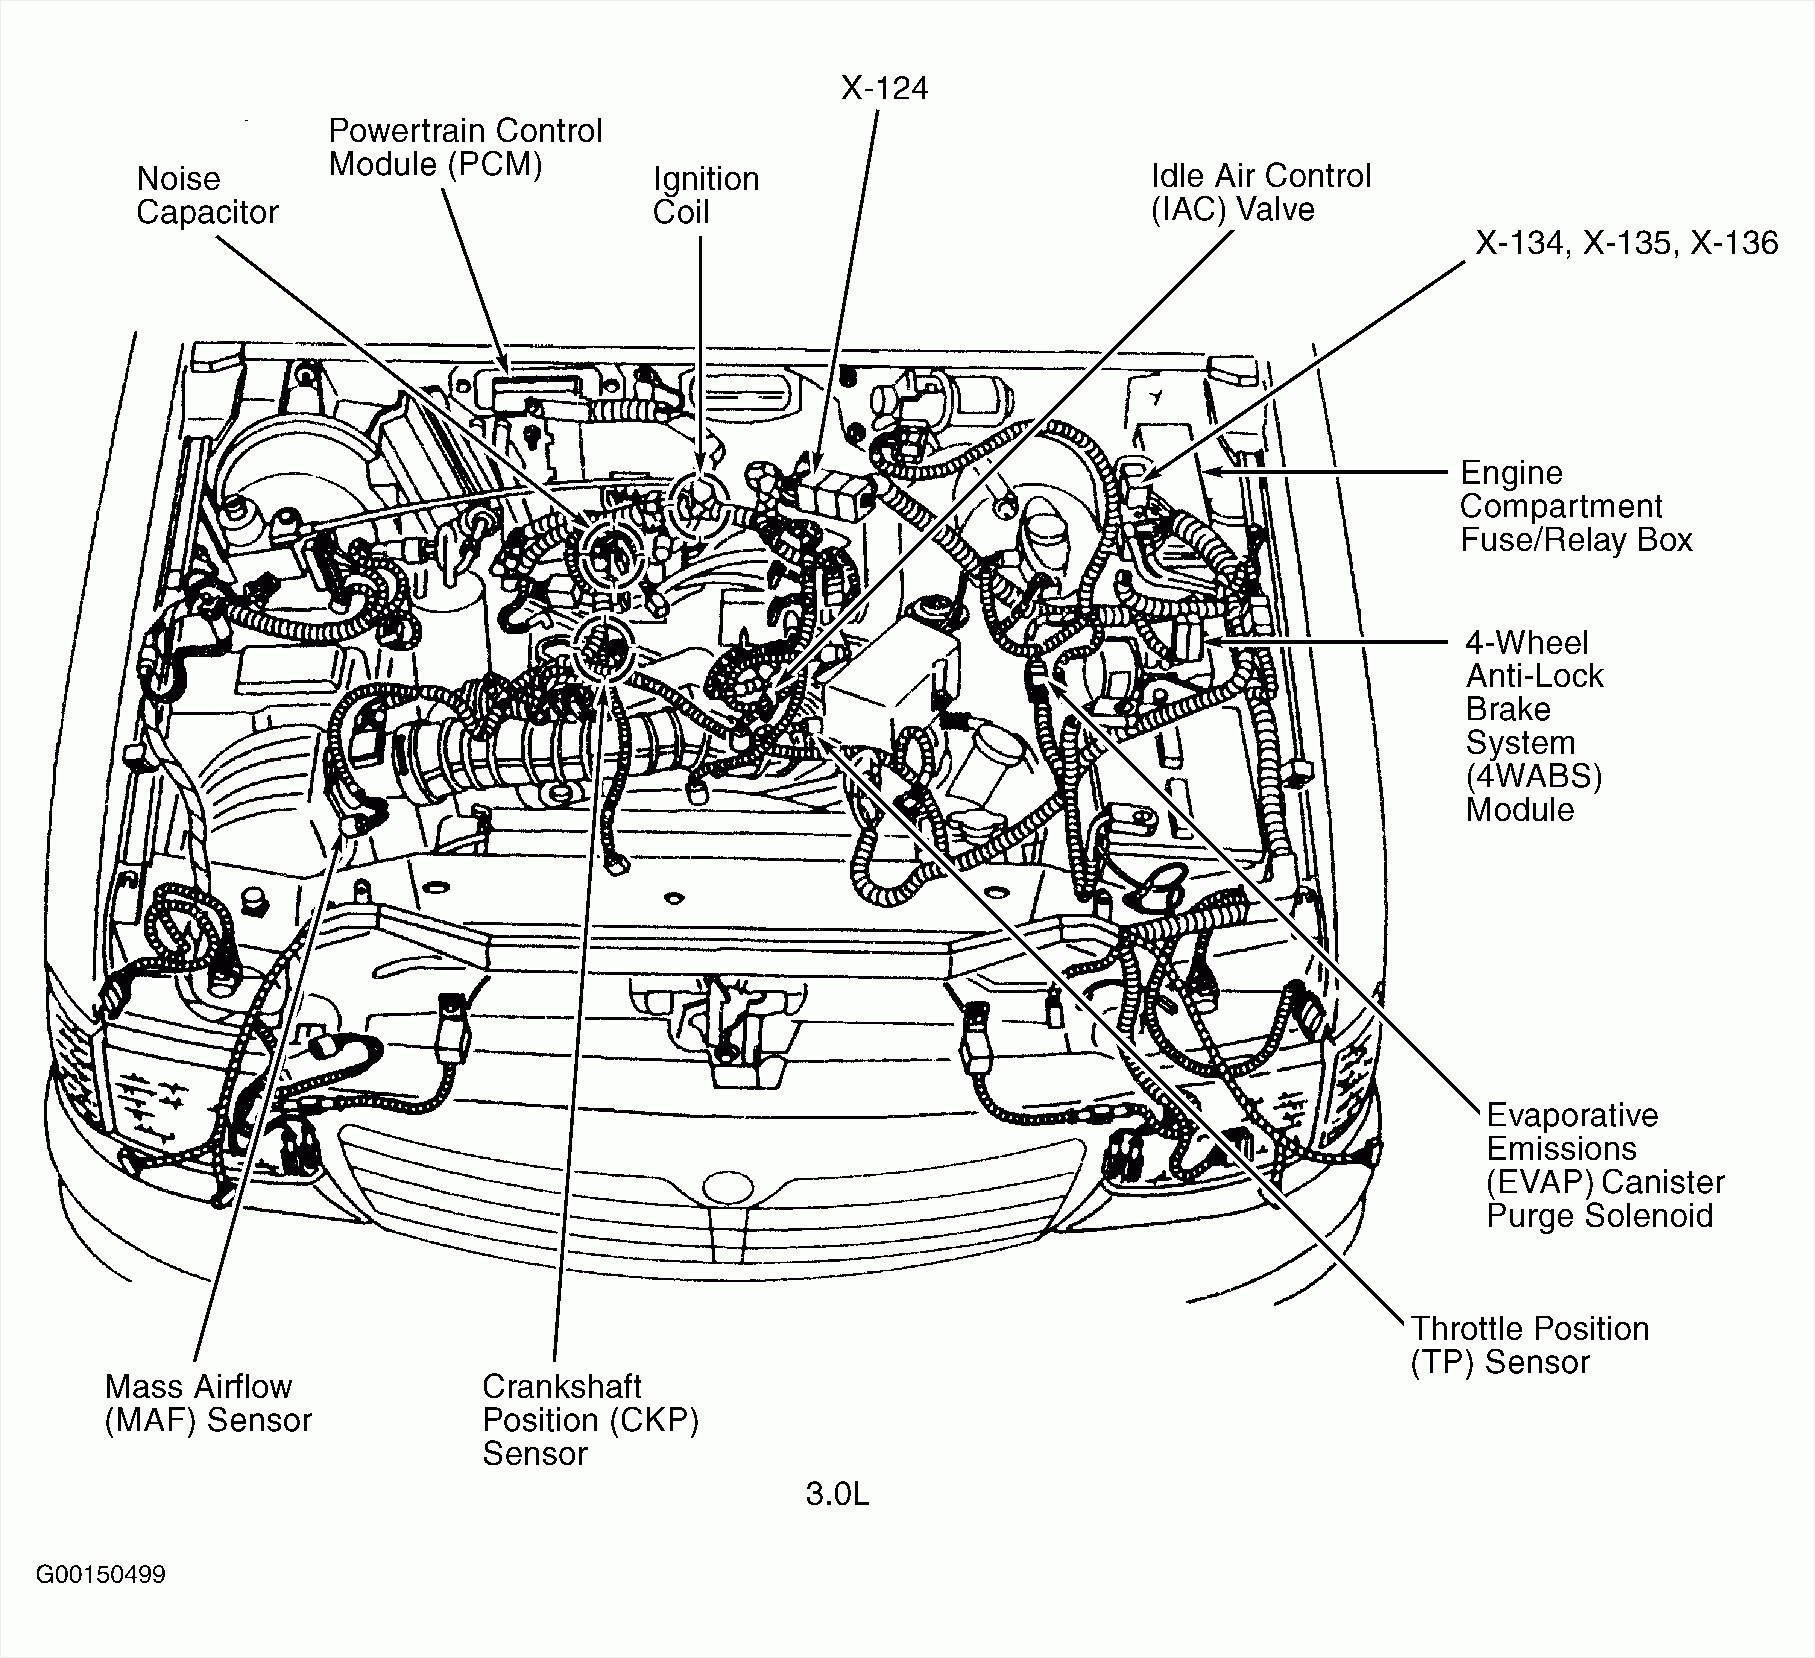 Diagram Of A Diesel Engine Engine Valve Timing Diagram 2004 Mazda 6 V6  Engine Diagram Wiring